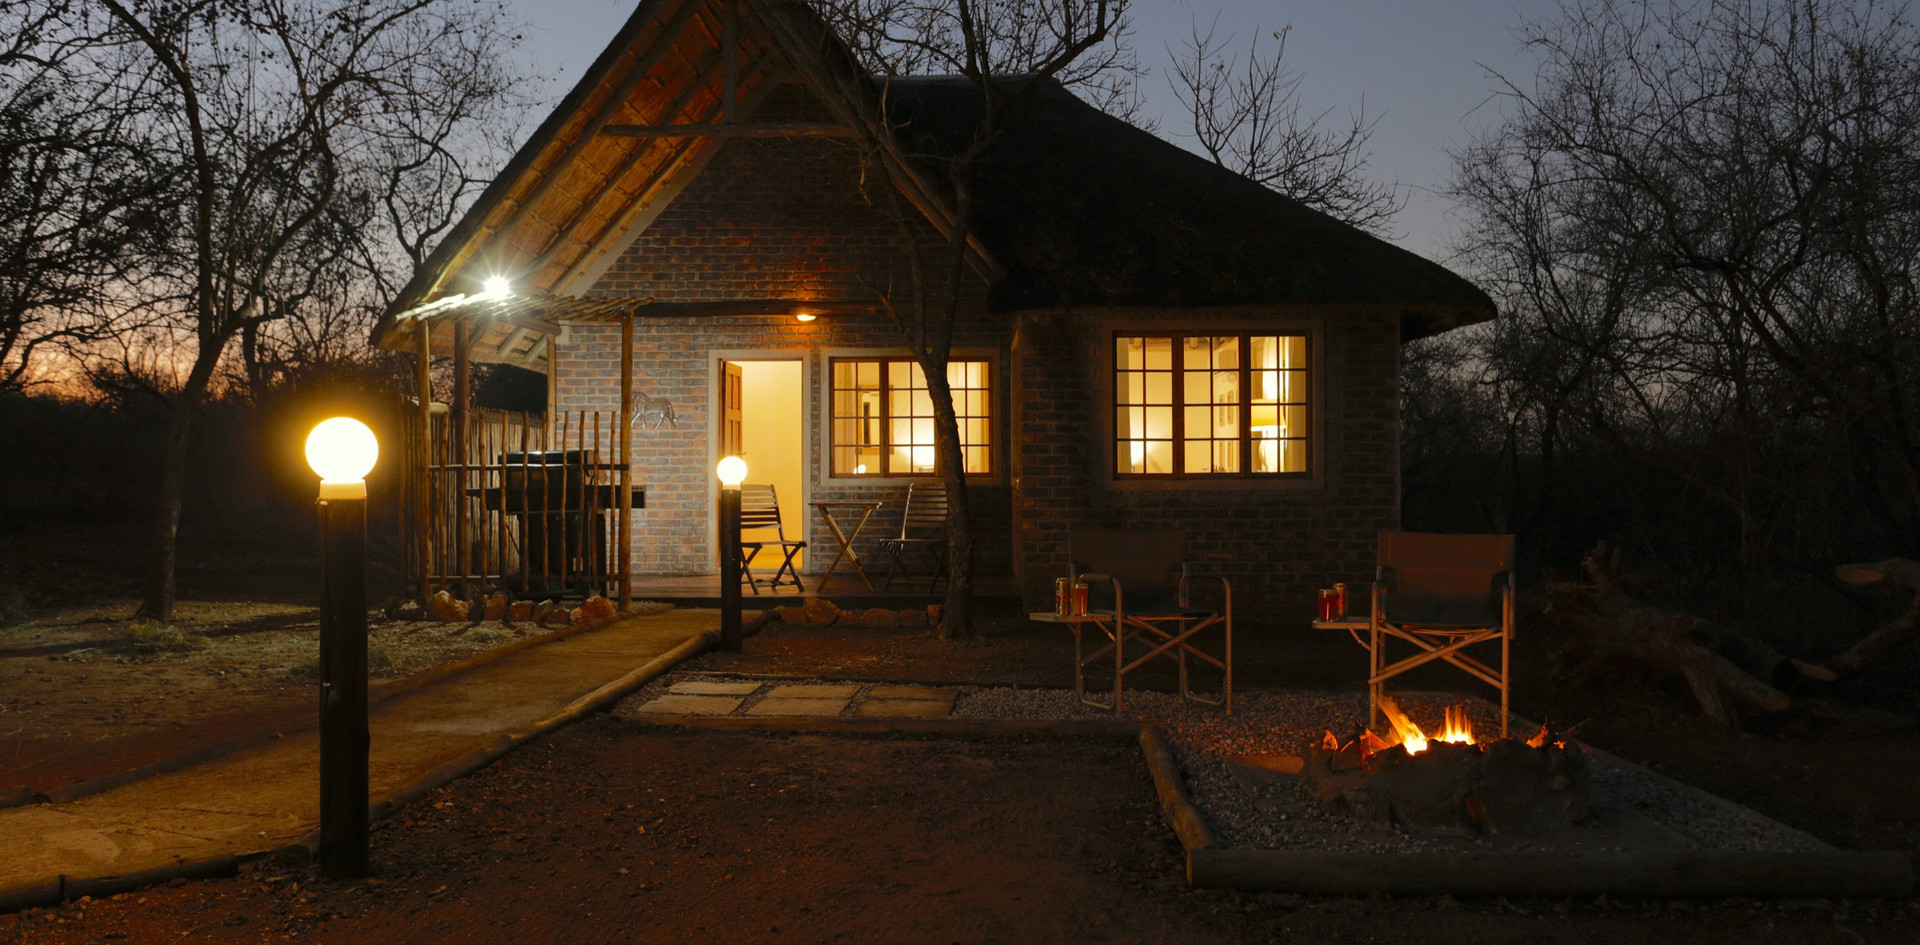 Tusk_Bush_Lodge_Kruger_edited.jpg